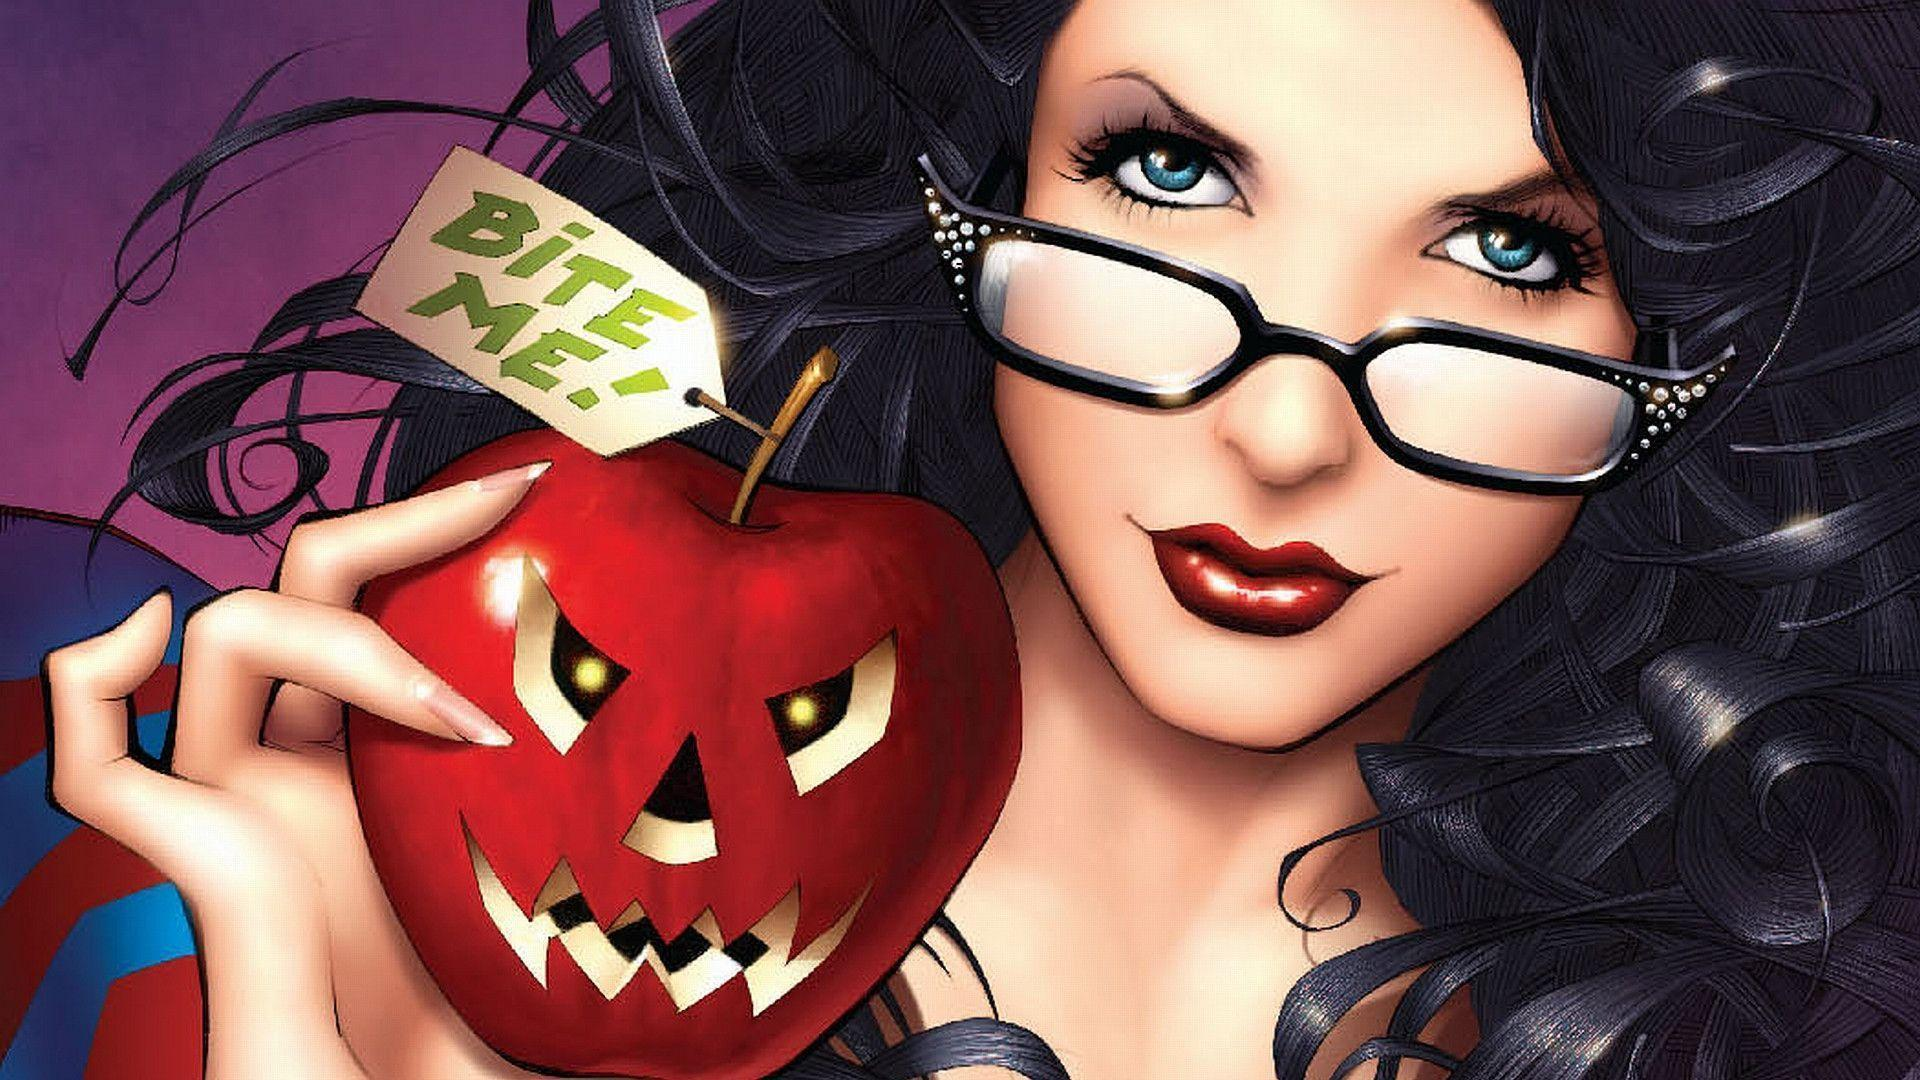 female grimm fairy tales wallpaper - photo #27